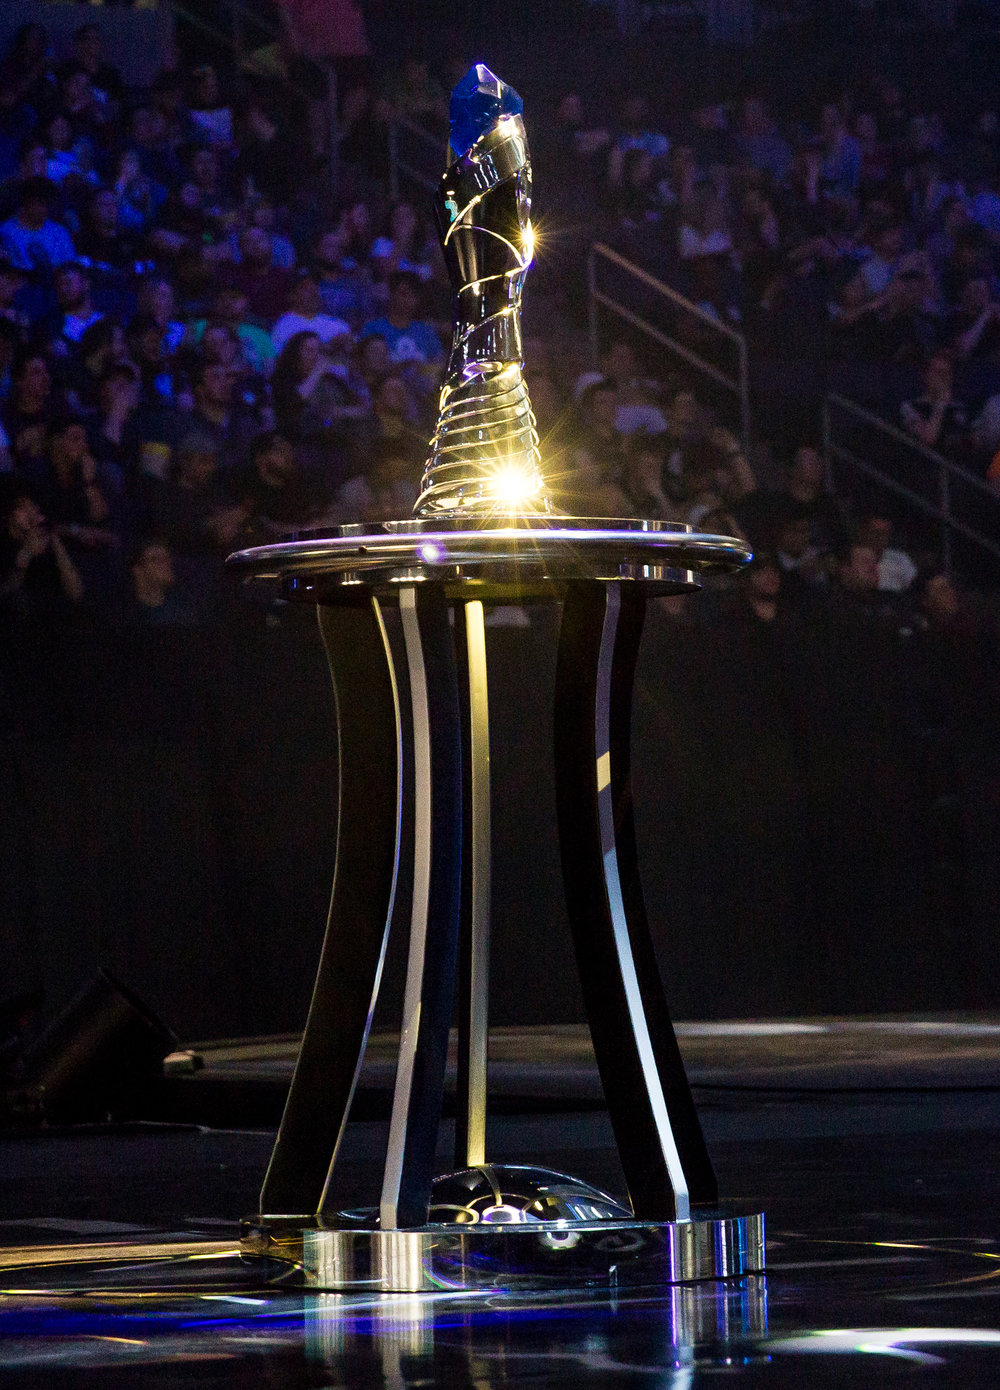 ST LOUIS, MO - APRIL 13:Trophy on stage ready to be presented at LCS Spring Finals at Chaifetz Arena on April 13, 2019 in St Louis, Missouri. Photo by David Doran/ESPAT Media